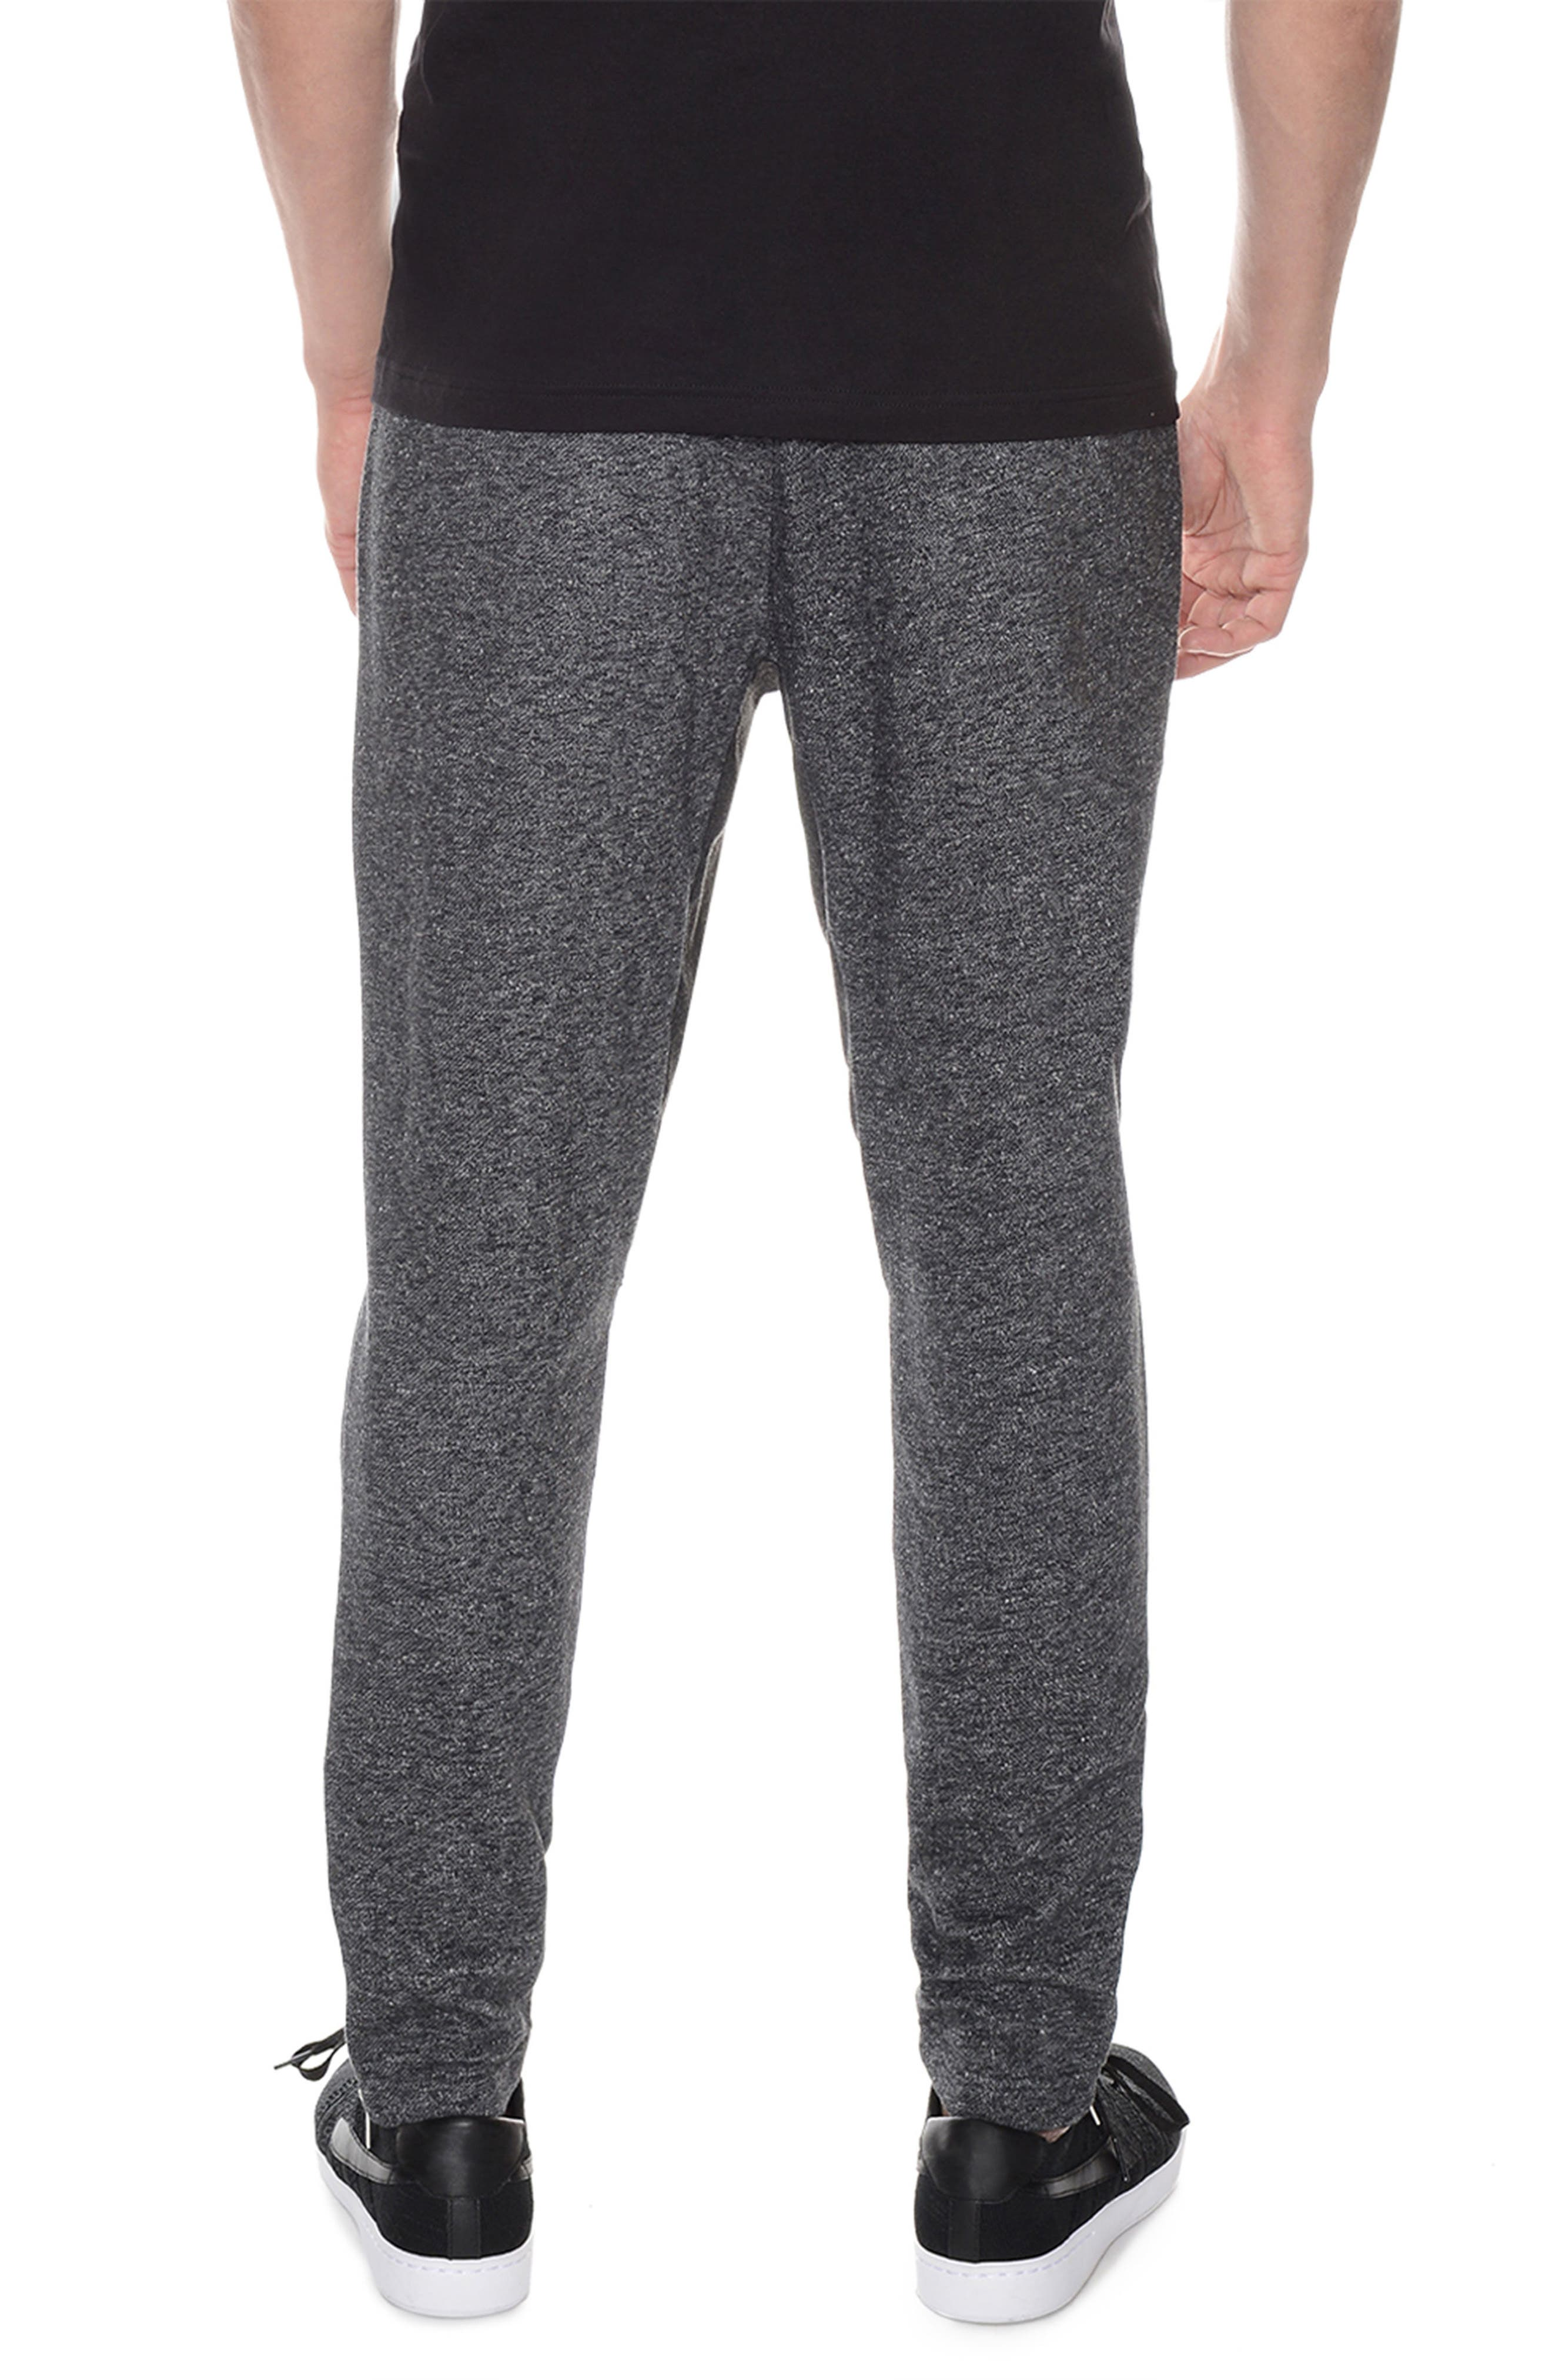 French Terry Lounge Pants,                             Alternate thumbnail 2, color,                             Black Heather